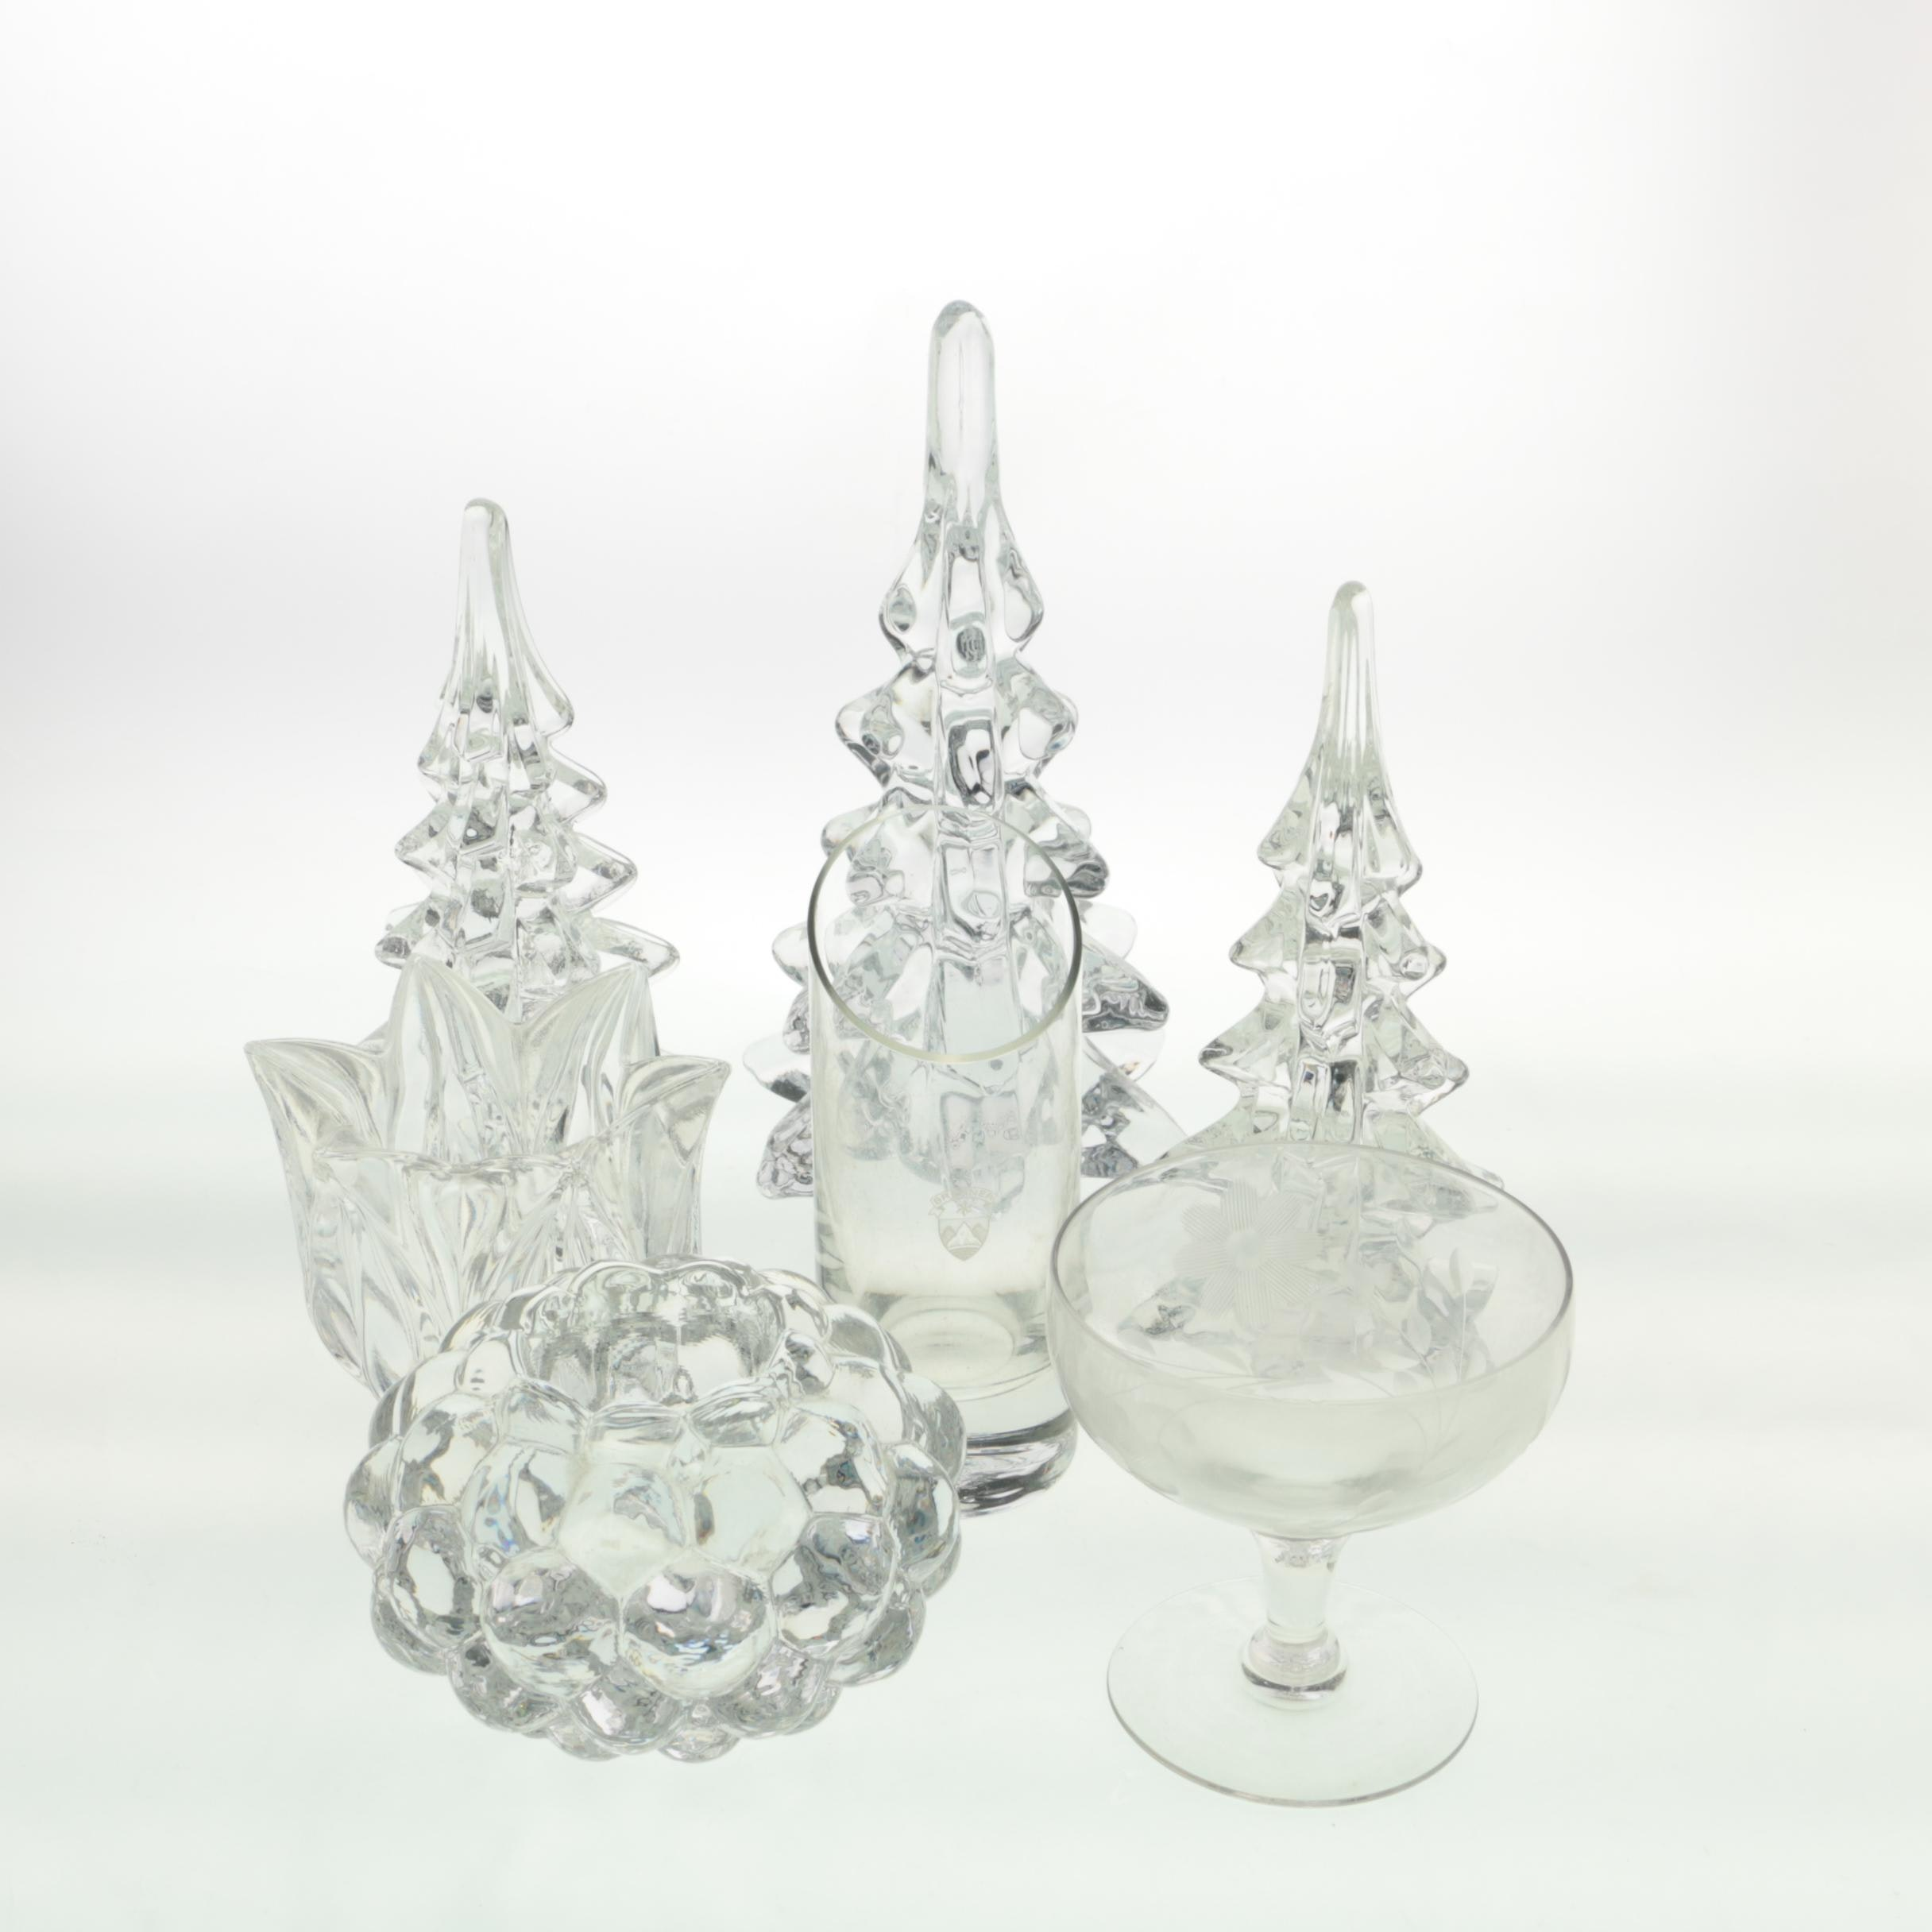 Decorative Glassware Including Waterford Crystal